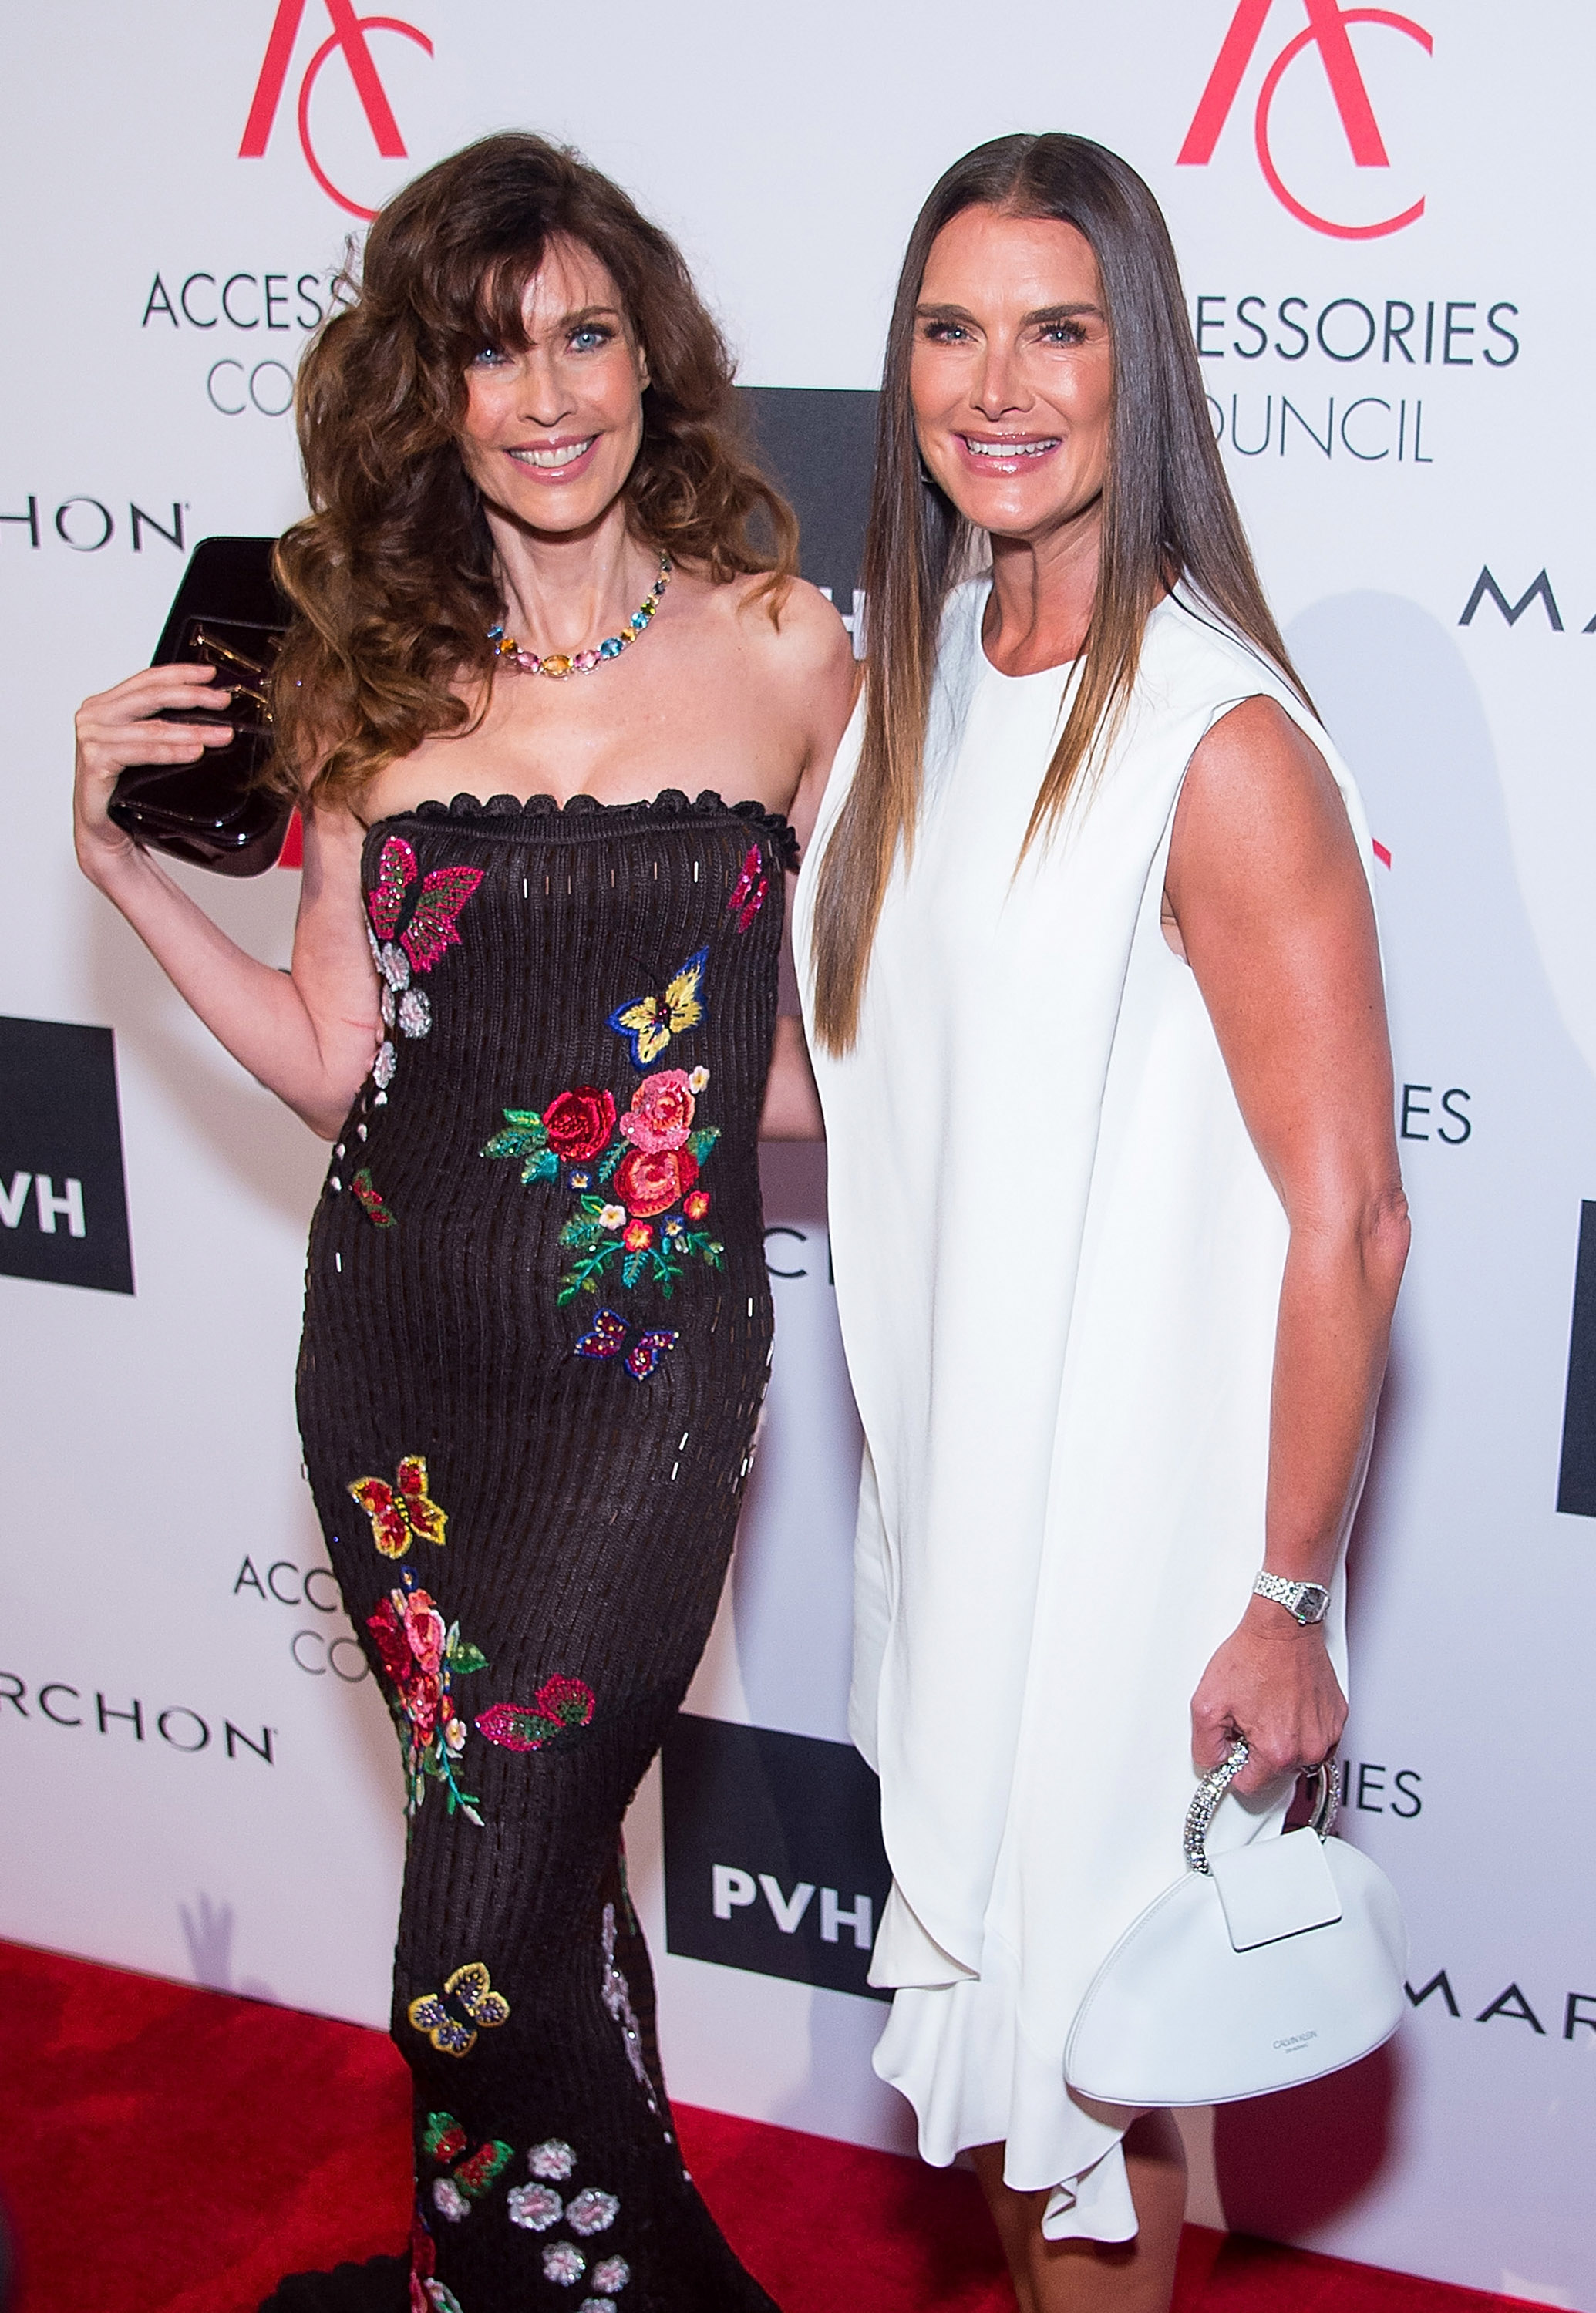 "Veteran supermodels Carol Alt and <a href=""http://style.nine.com.au/2017/06/20/12/22/brooke-shields-calvin-klein"" target=""_blank"">Brooke Shields</a> demonstrated that age is only a number when they reunited on the red carpet for the 2017 Accessories Council Excellence Awards in New York.<br> <br> Carol Alt, 56, has appeared on more than 500 magazine covers including <em>Vogue </em>and <em>Elle </em>and was the face of Diet Pepsi, Cover Girl and Givenchy at the height of her career.<br> <br> Before starring in <em>Blue Lagoon</em> and <em>Suddenly Susan</em>, Shields, 52, was a model sensation for Calvin Klein, appearing on the red carpet in a white dress from the label recently revitalised by Raf Simons. <br> <br> The dynamic duo were on hand for the premier event for US accessories designers.<br> <br> Joseph Altuzarra was honoured with the Designer of the Year Award, Monica Rich Kosann took out the Trailblazer Award, Eva Longoria in Georges Chakra won the Style Ambassador Award and Kendra Scott received the Breakthrough Award. <br> <br> See the top red carpet looks here.<br> <br>"